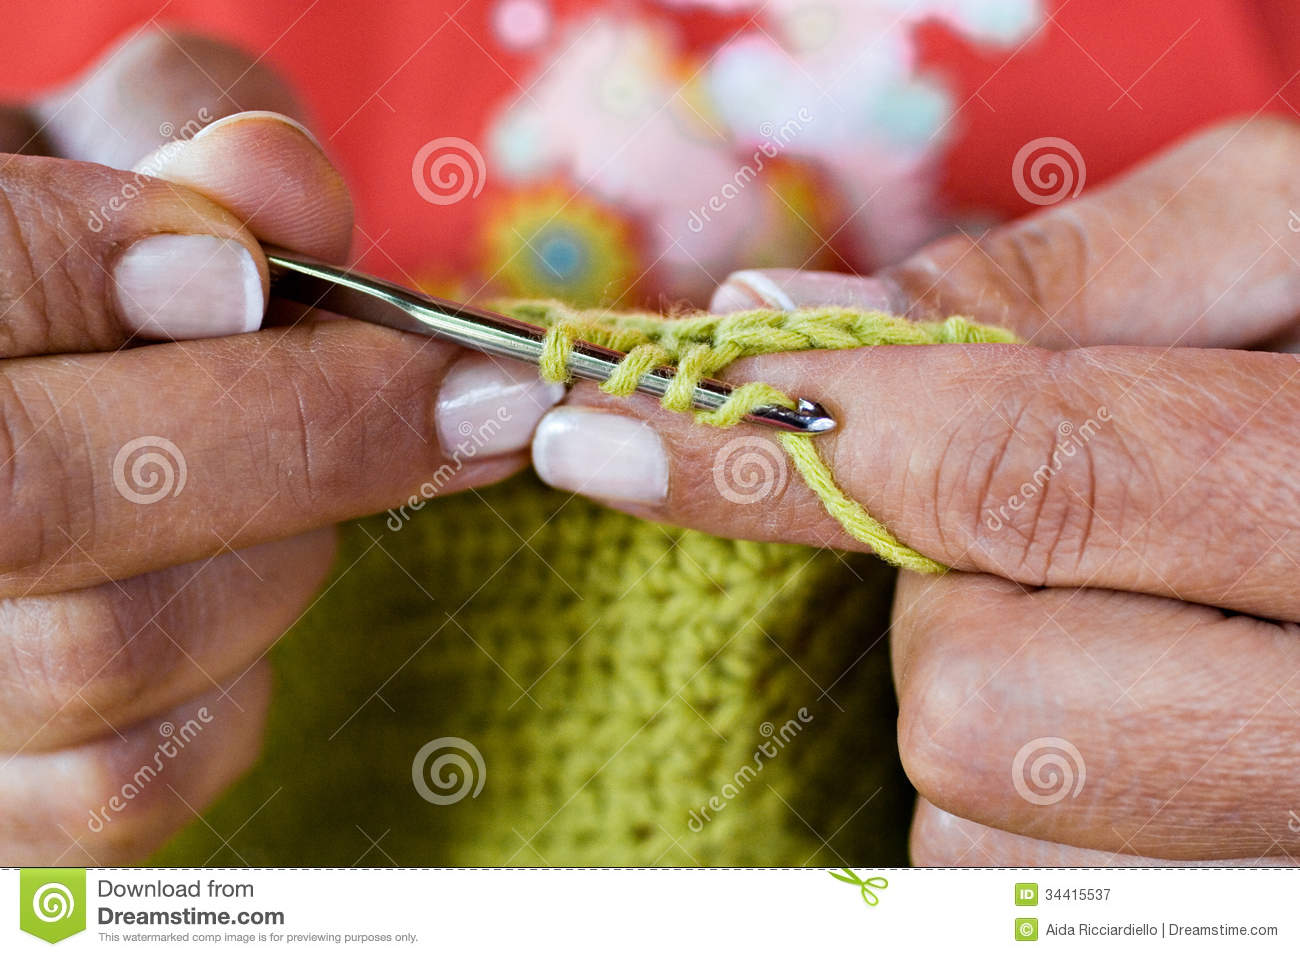 Crocheting With Your Hands : Woman?s hands crochetingclose up.